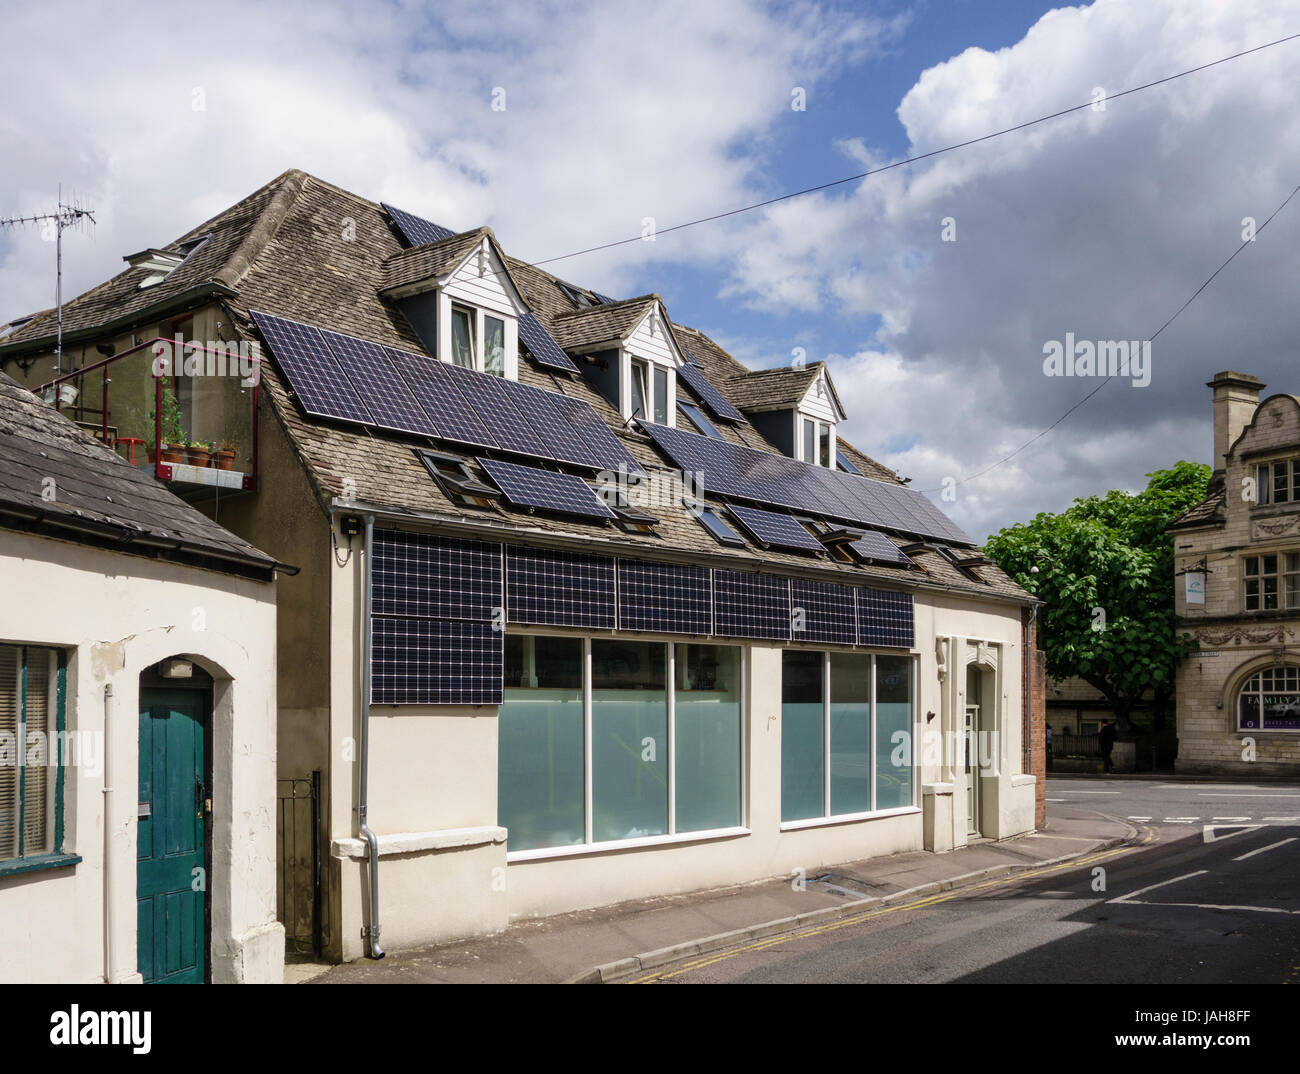 Multiple solar panels installed on the roof of a building, Stroud, Gloucestershire, UK - Stock Image